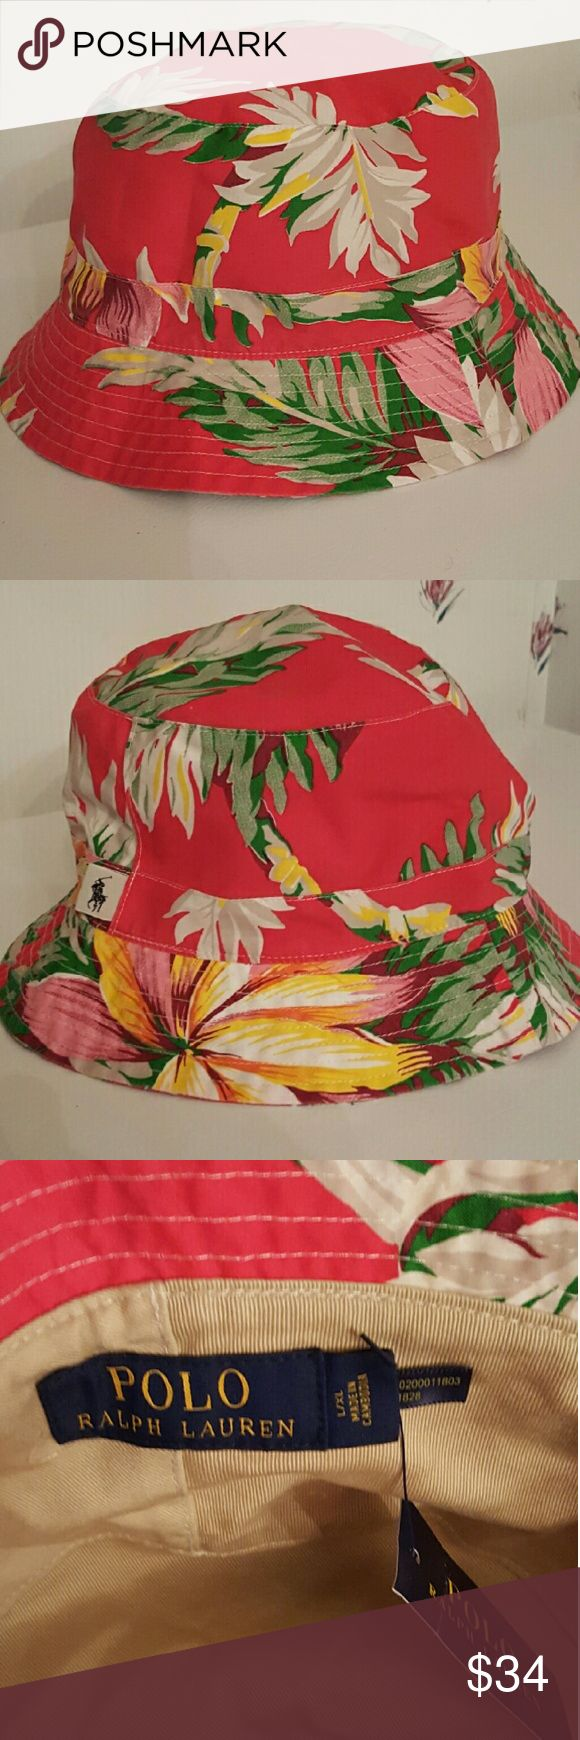 Men's Polo Ralph Lauren Floral Bucket Hat L/XL With a vibrant all-over floral pattern this bucket hat is a perfect style for your next tropical getaway or just on a weekend boardwalk stroll. L/XL Ralph Lauren Accessories Hats